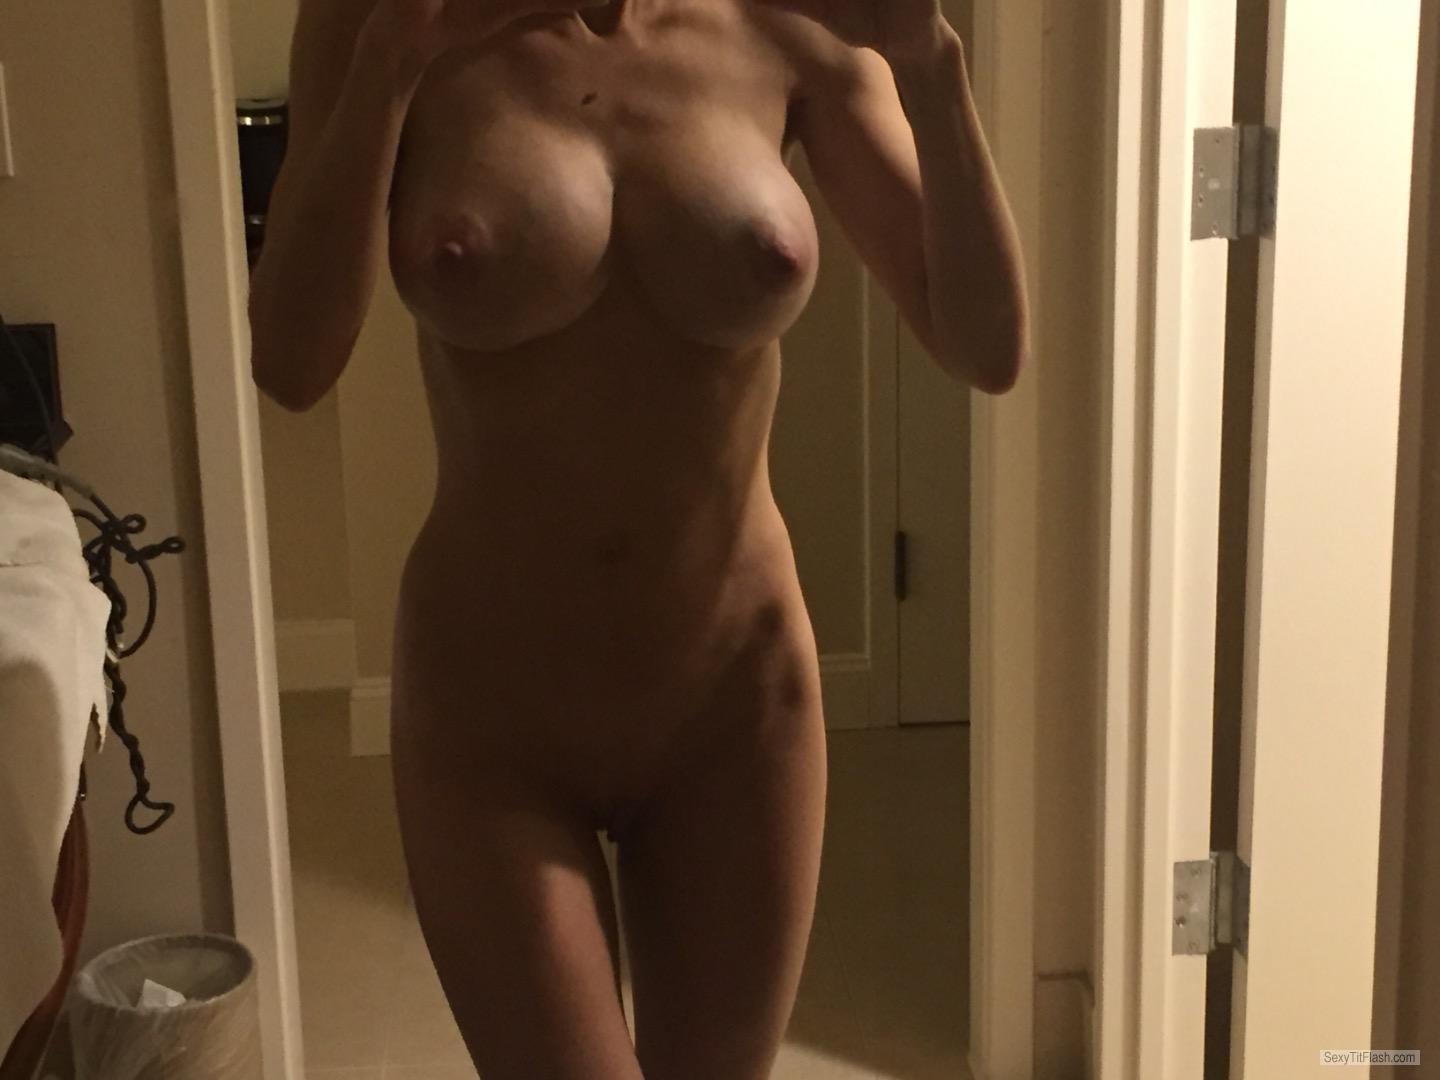 My Big Tits Selfie by Atlas